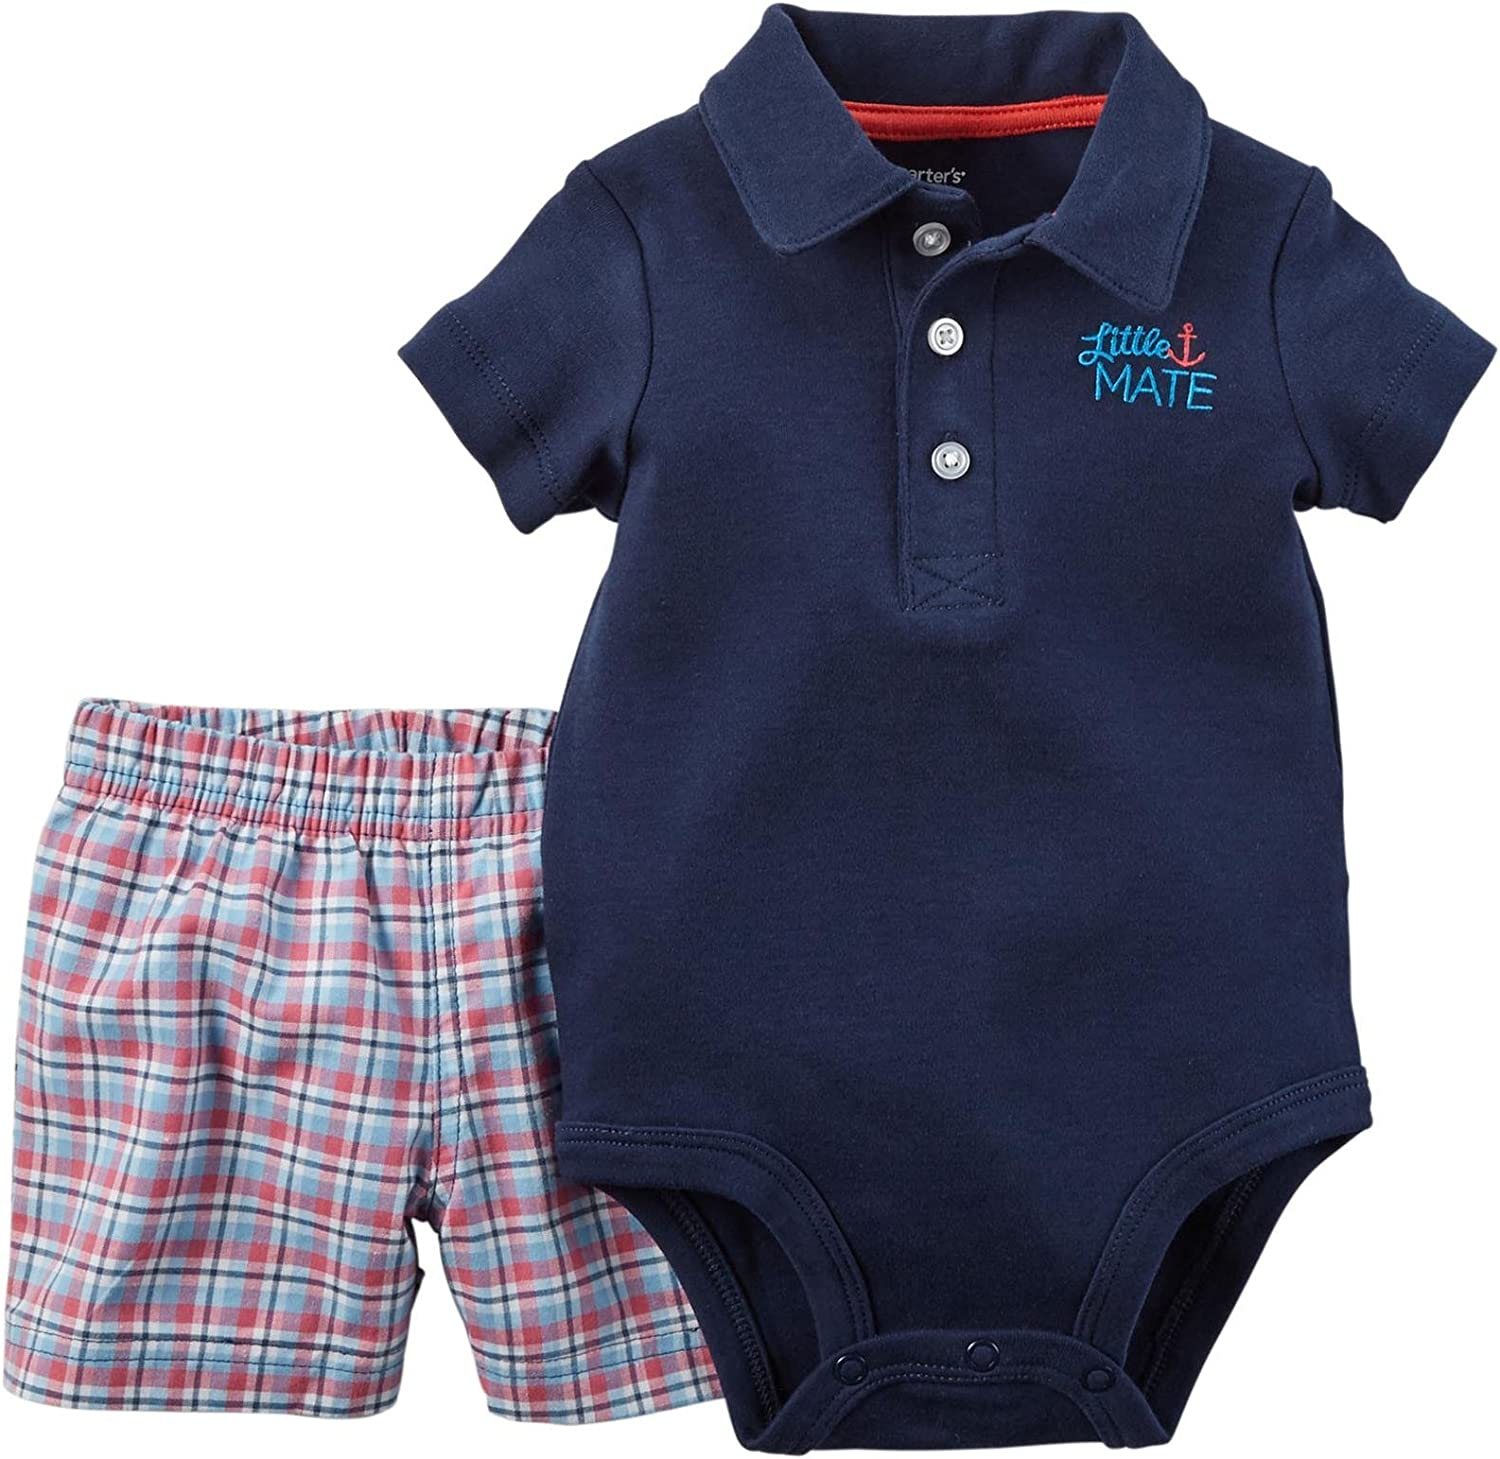 Carters Baby Boys Bodysuit Pant Sets 121g452